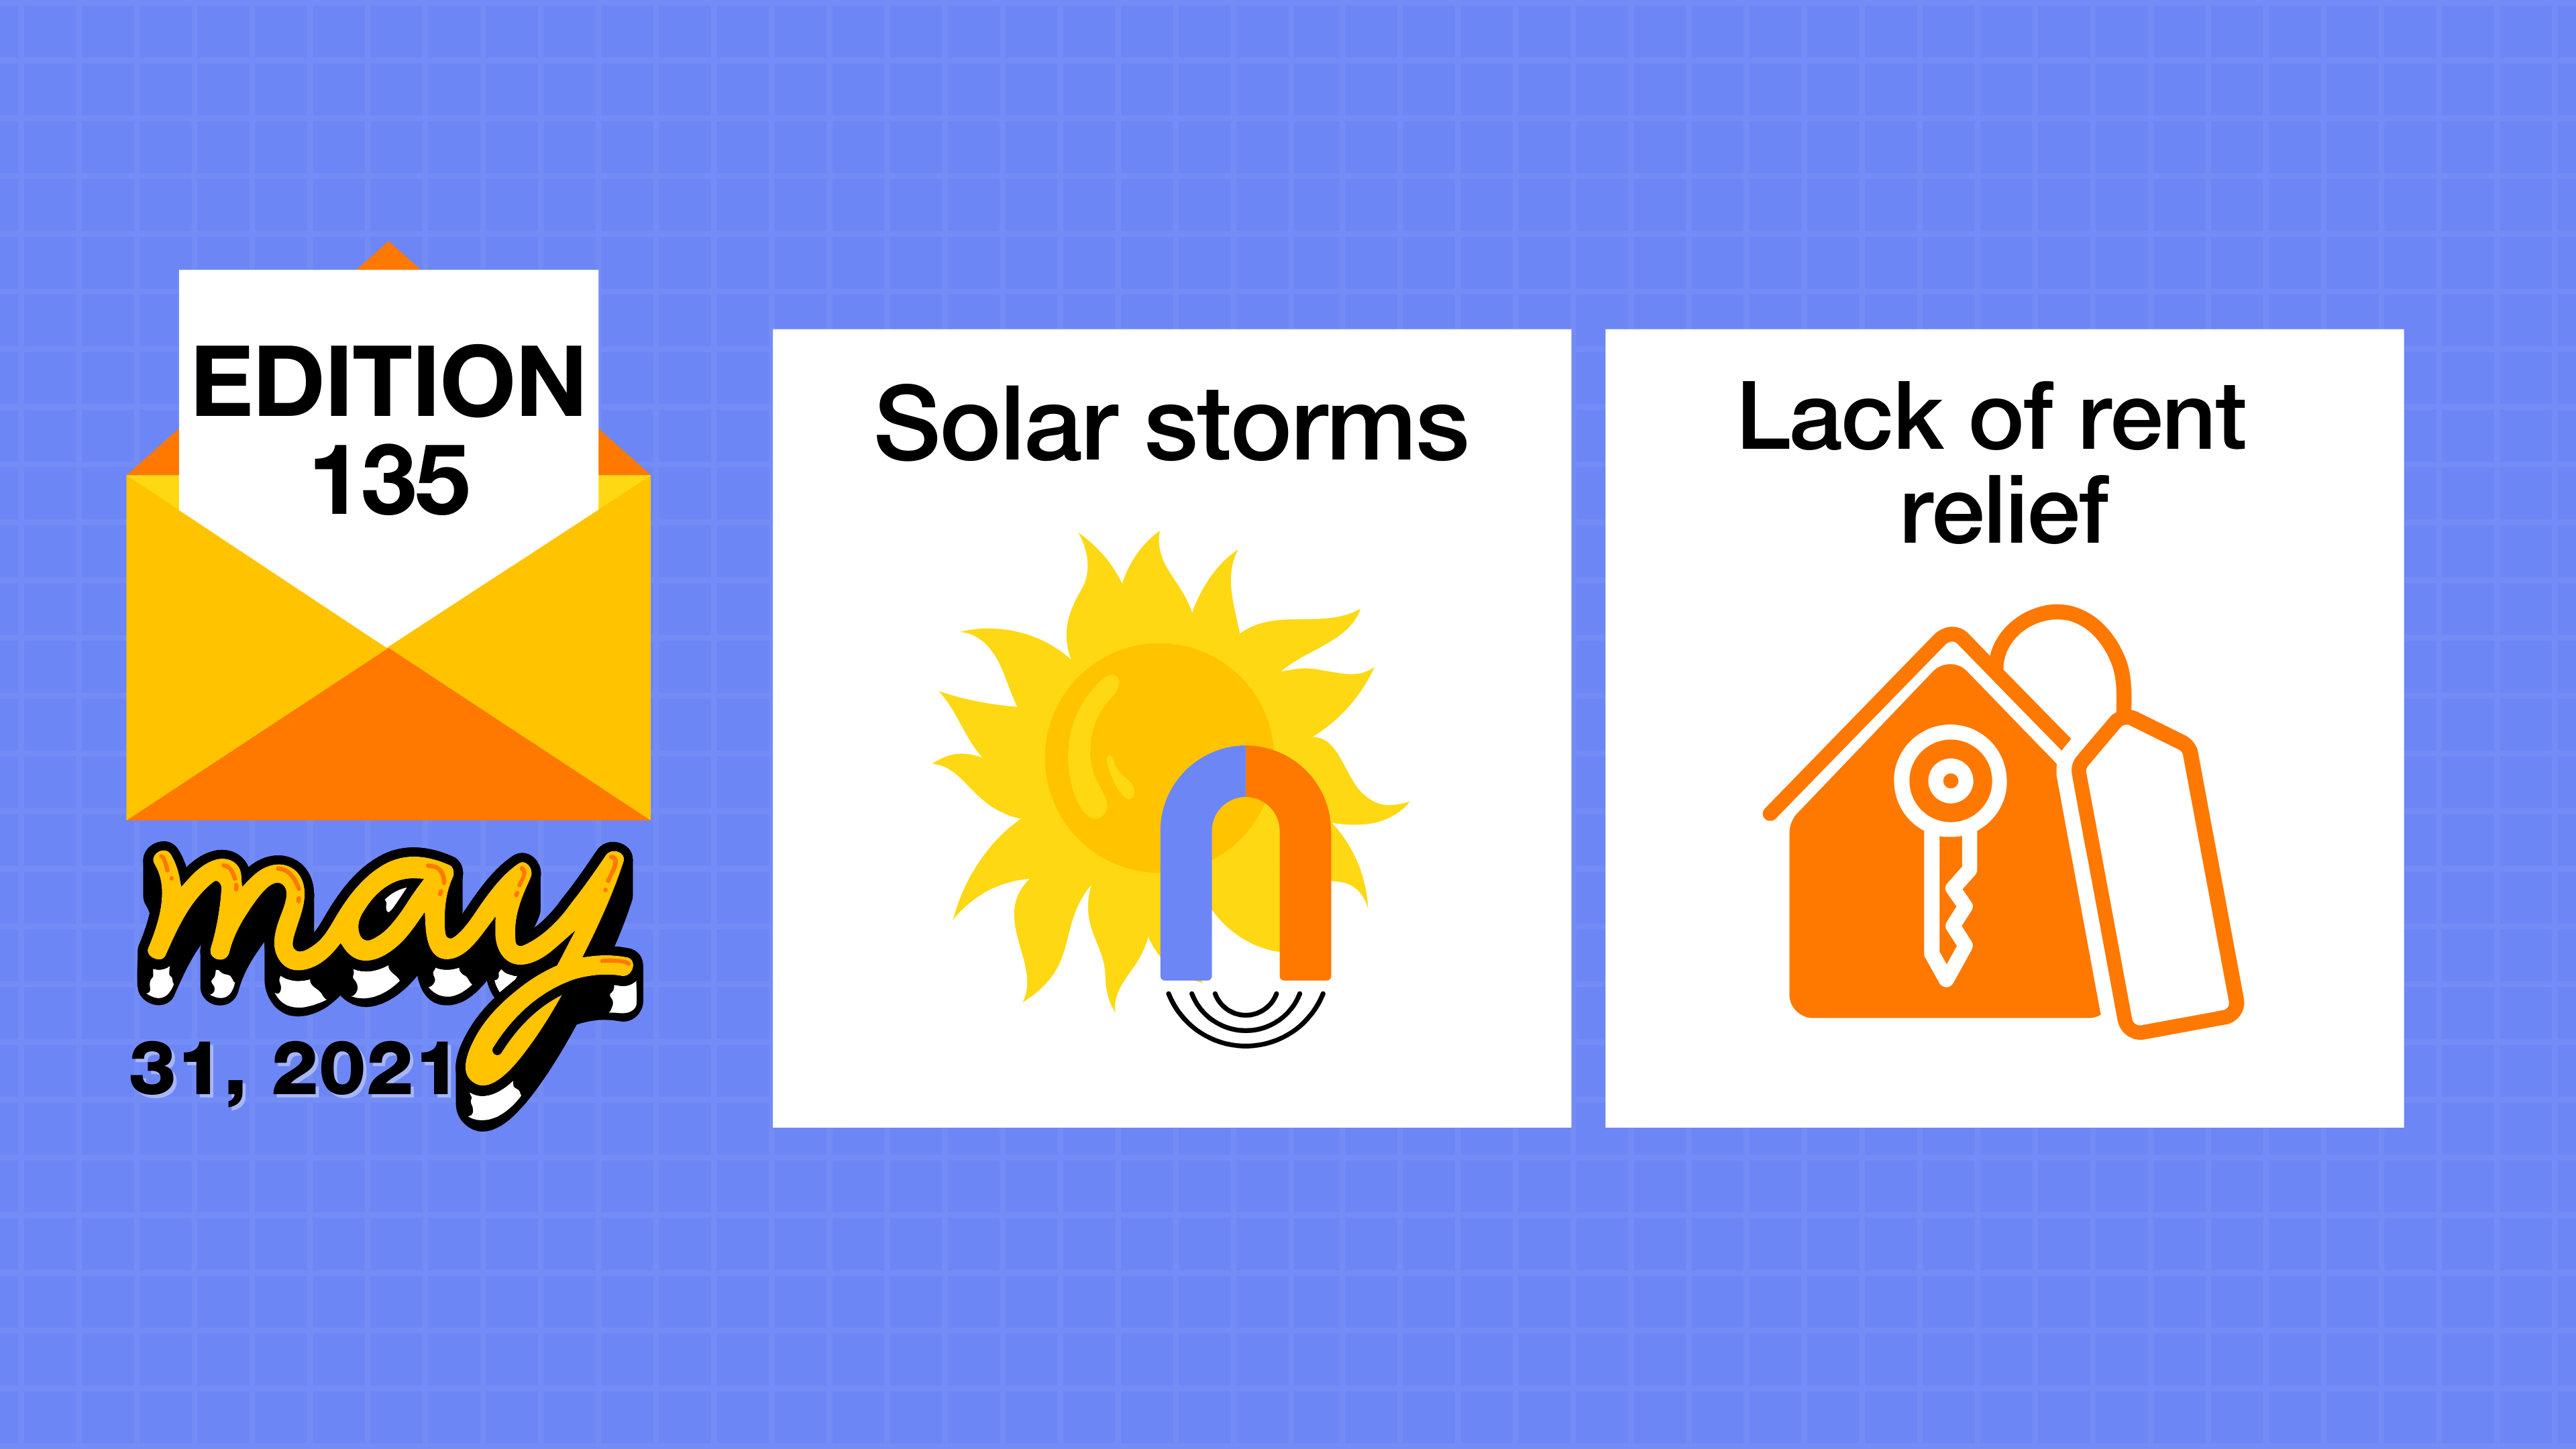 Solar storms and the lack of rent relief